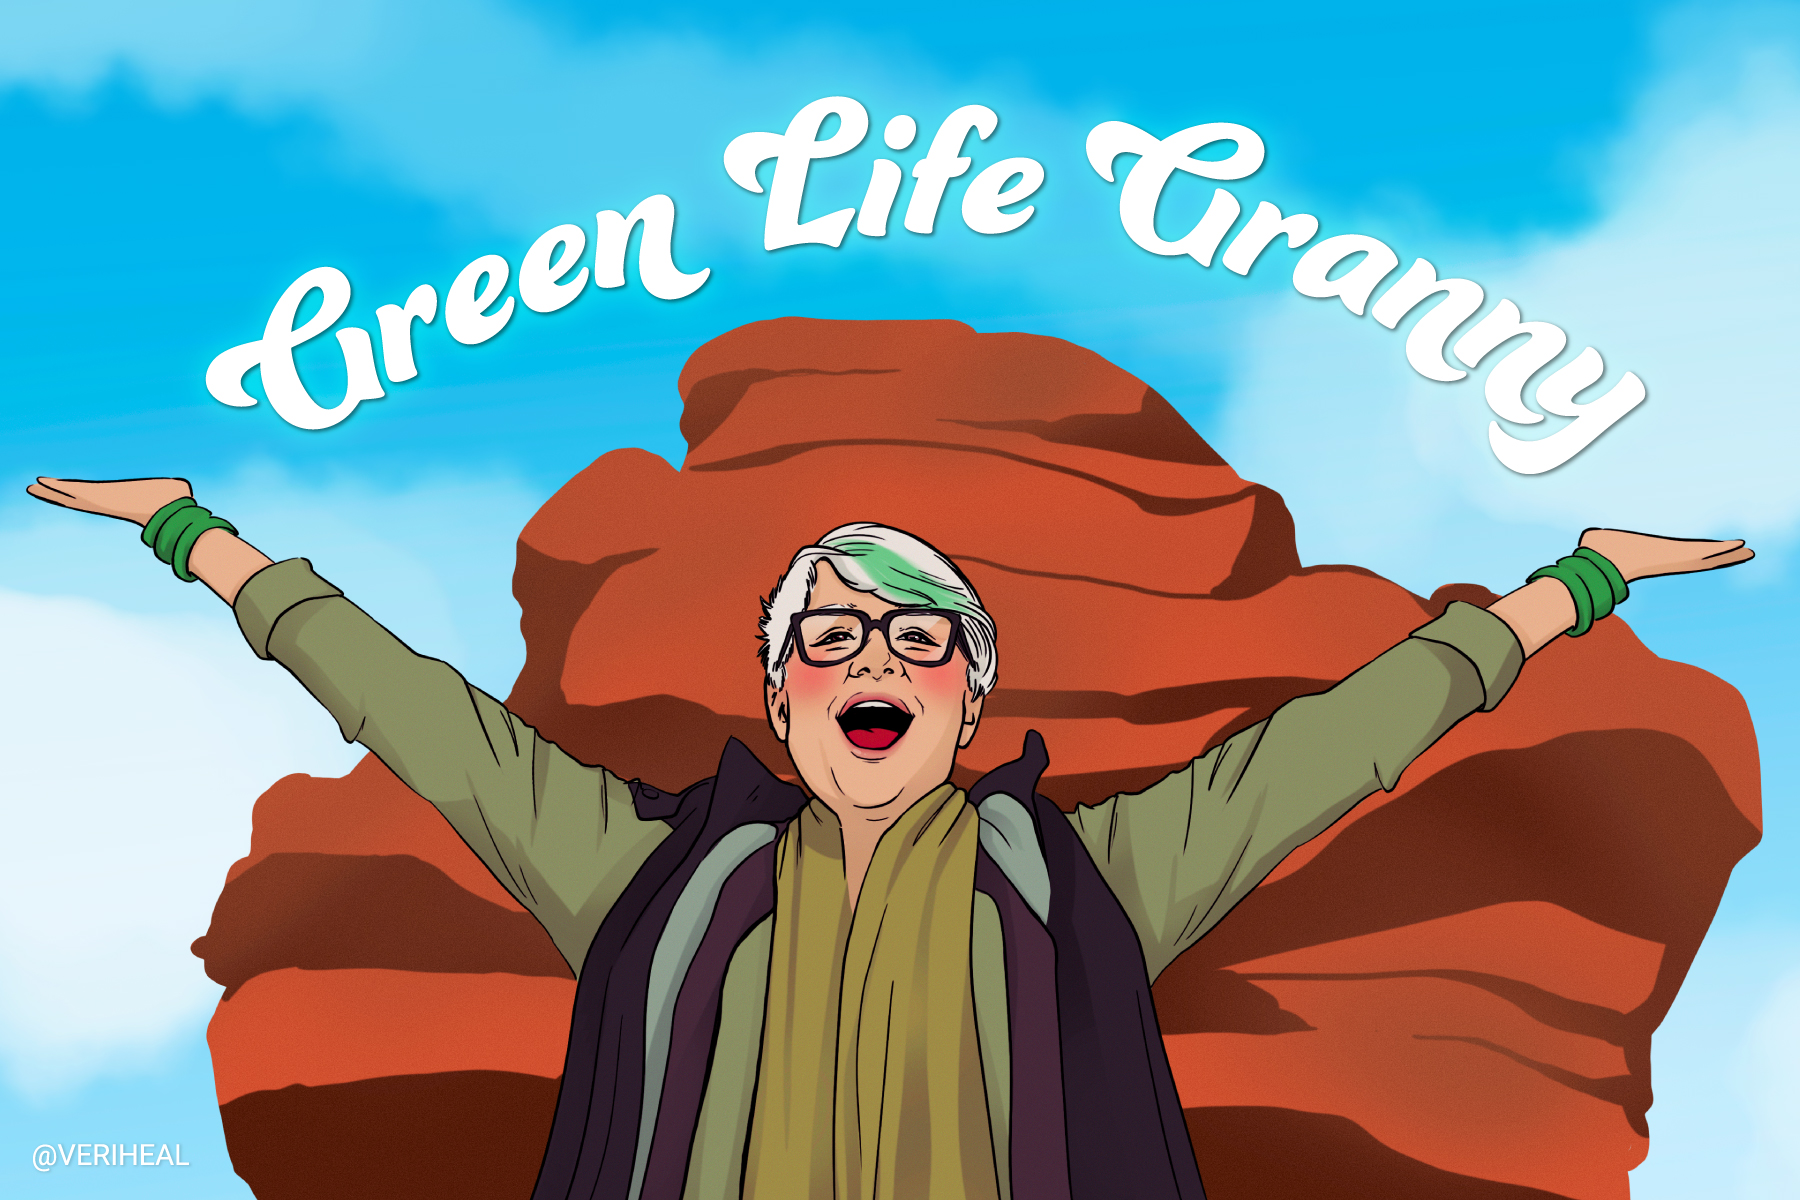 Lisa High the Green Life Granny and a Journey to Green Wellness